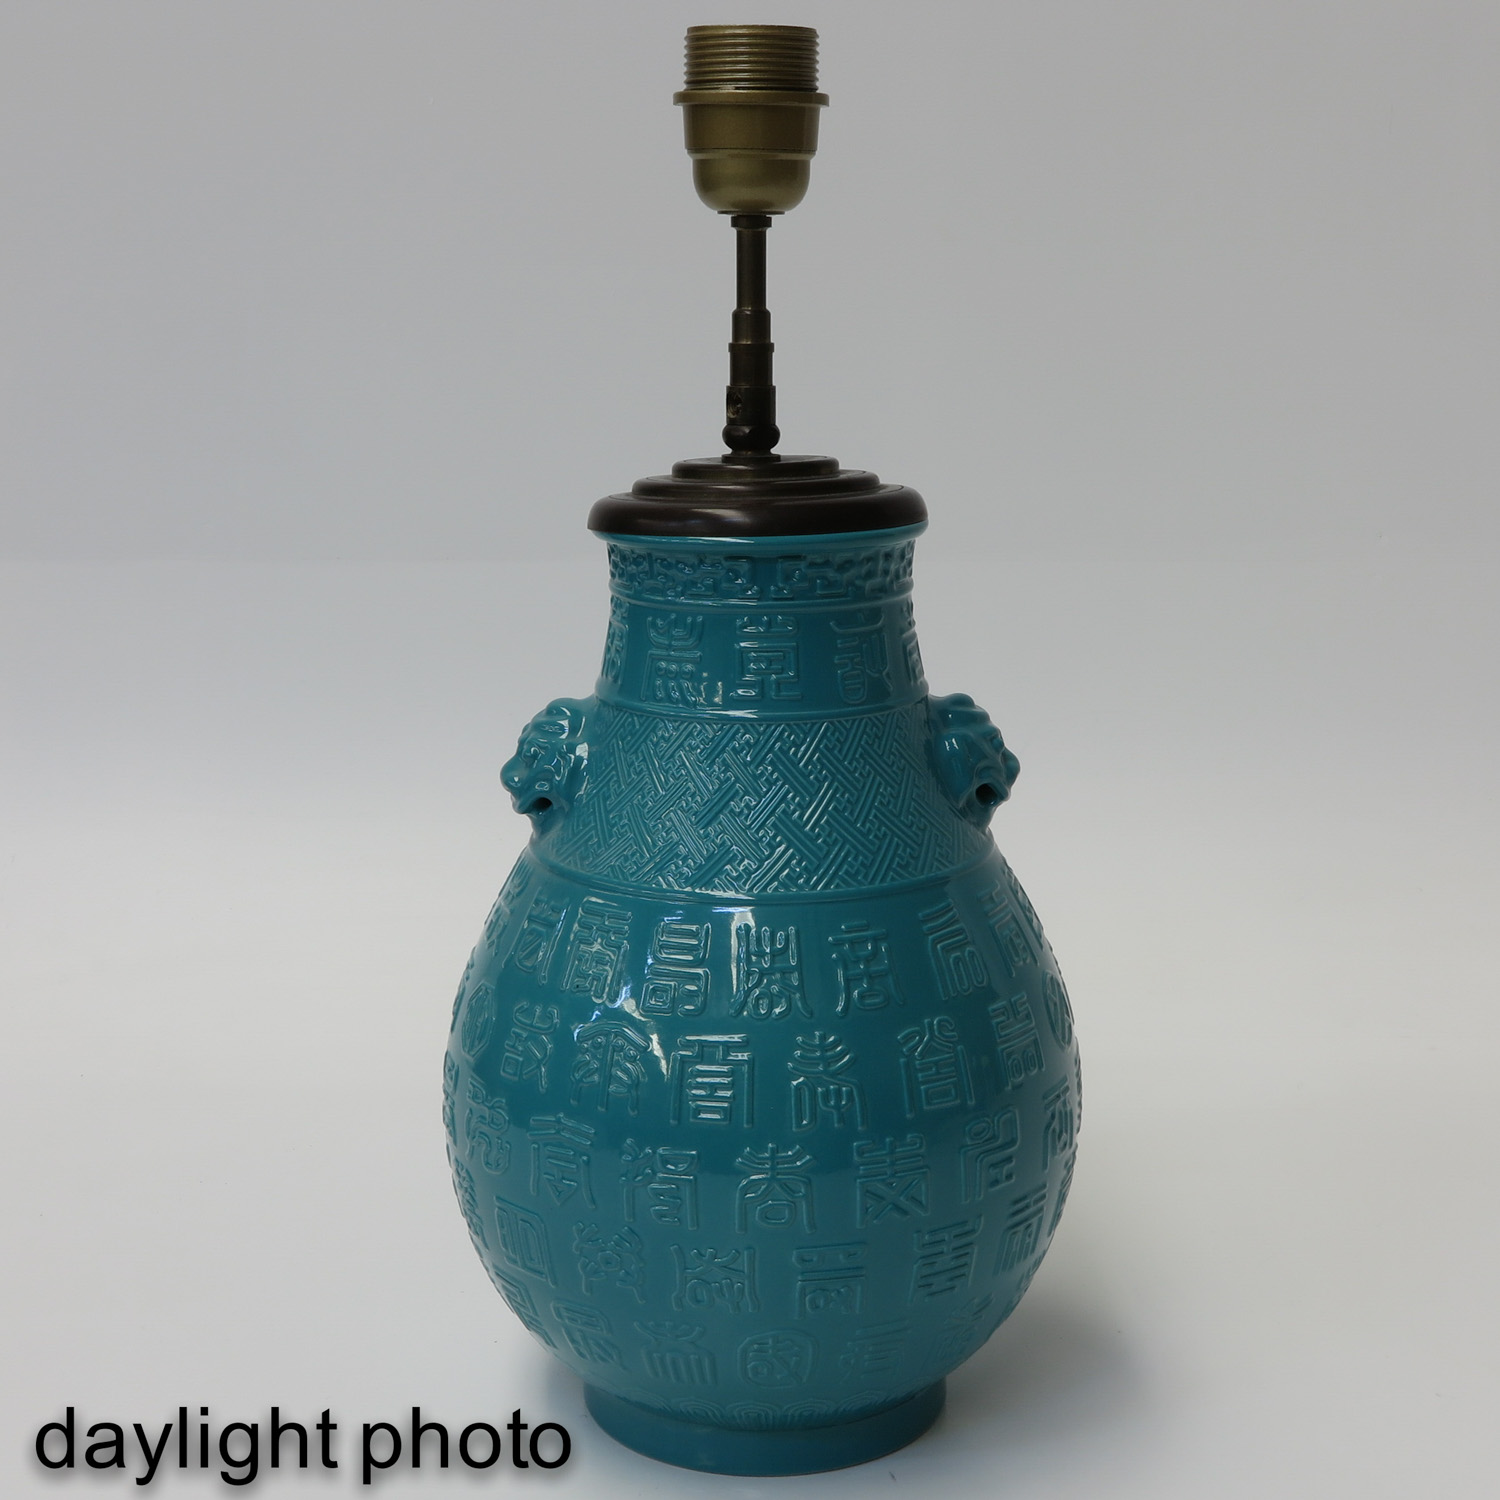 A Turqoise Glaze Lamp - Image 7 of 10